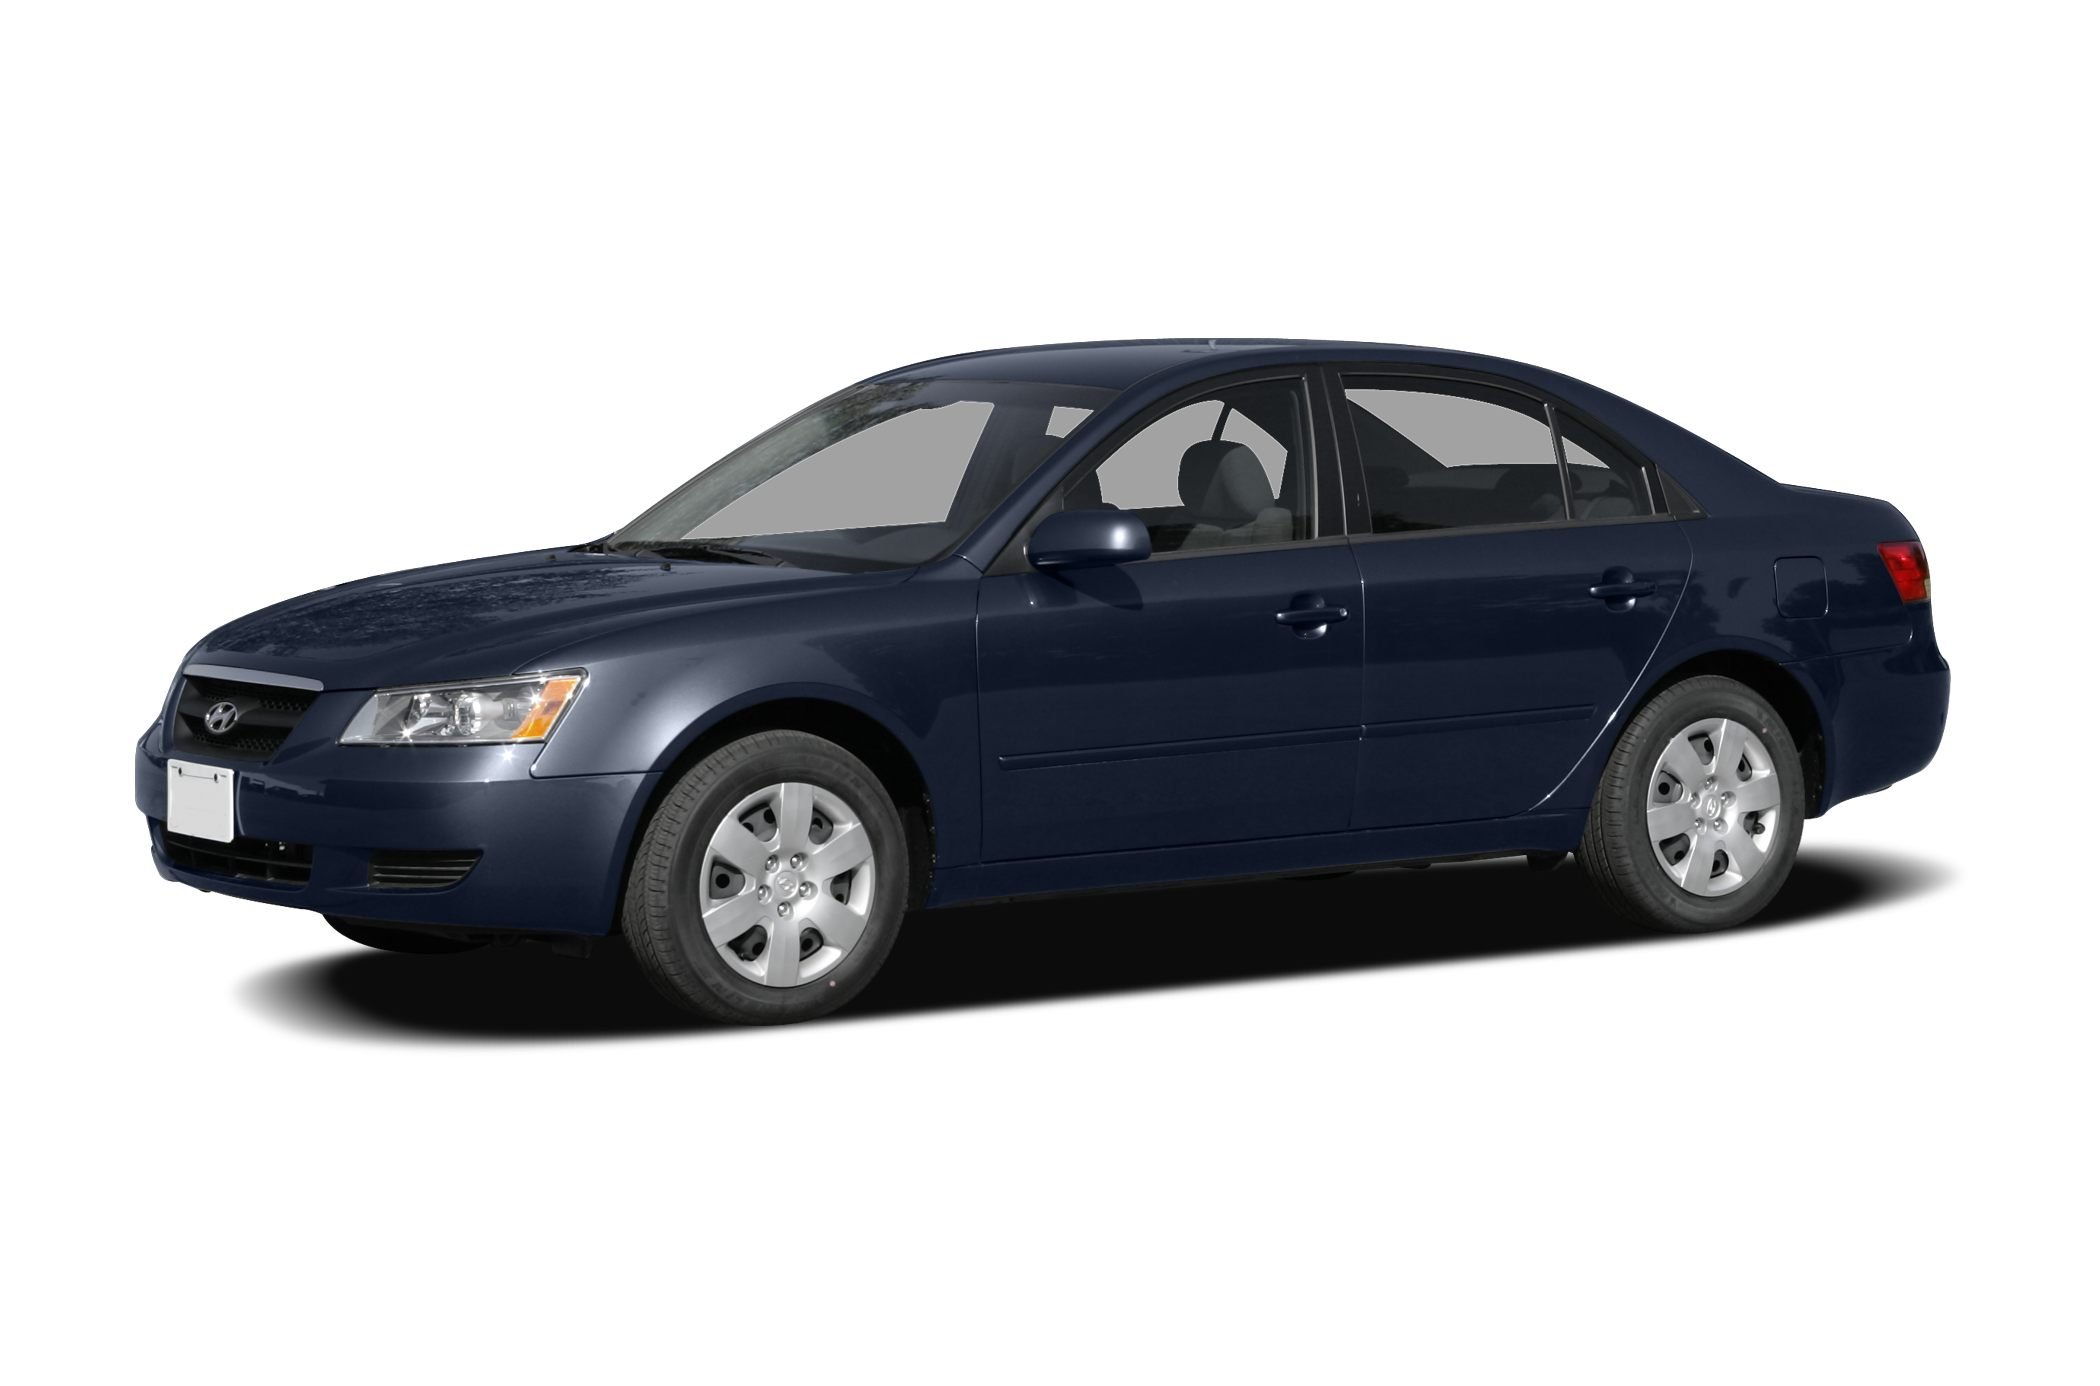 2008 Hyundai Sonata GLS ONE OWNER and Clean Carfax Sonata GLS 4D Sedan 24L I4 DOHC 16V FW